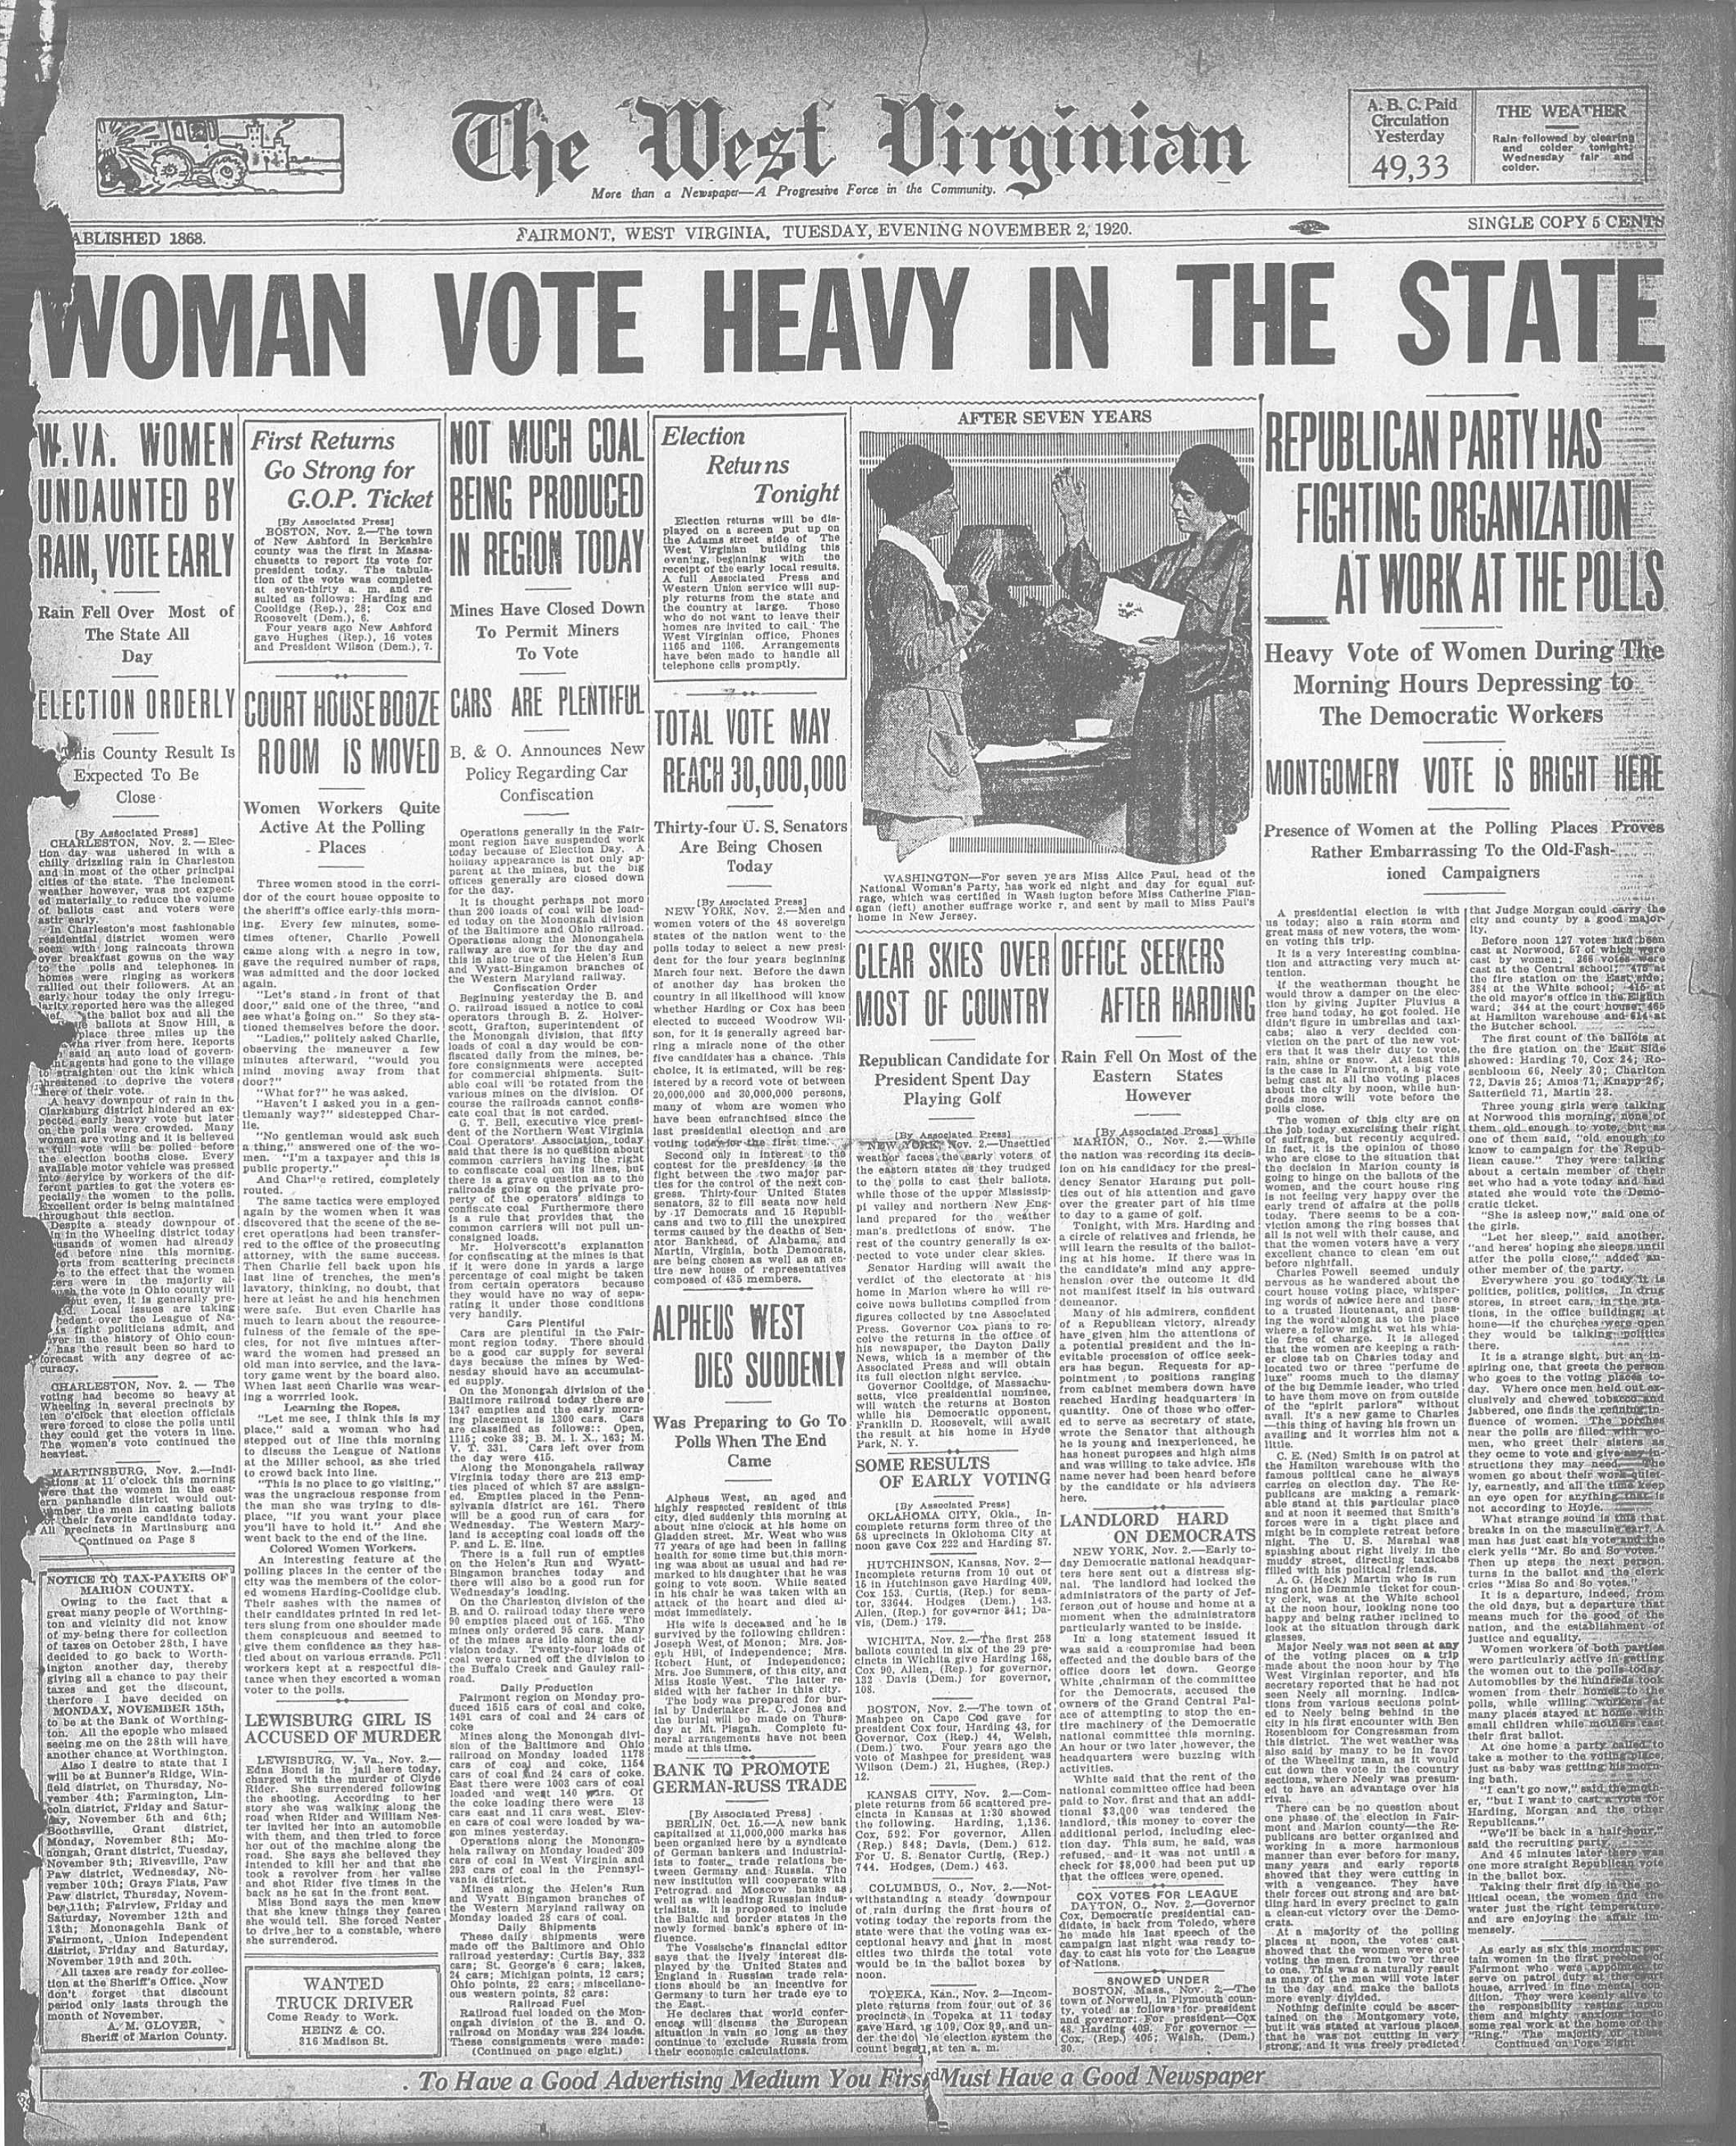 """Frontpage of """"The West Virginian"""" newspaper on Election Day in 1920, the first election women could vote in. The main headline reads: """"Women Vote Heavy in the State."""""""